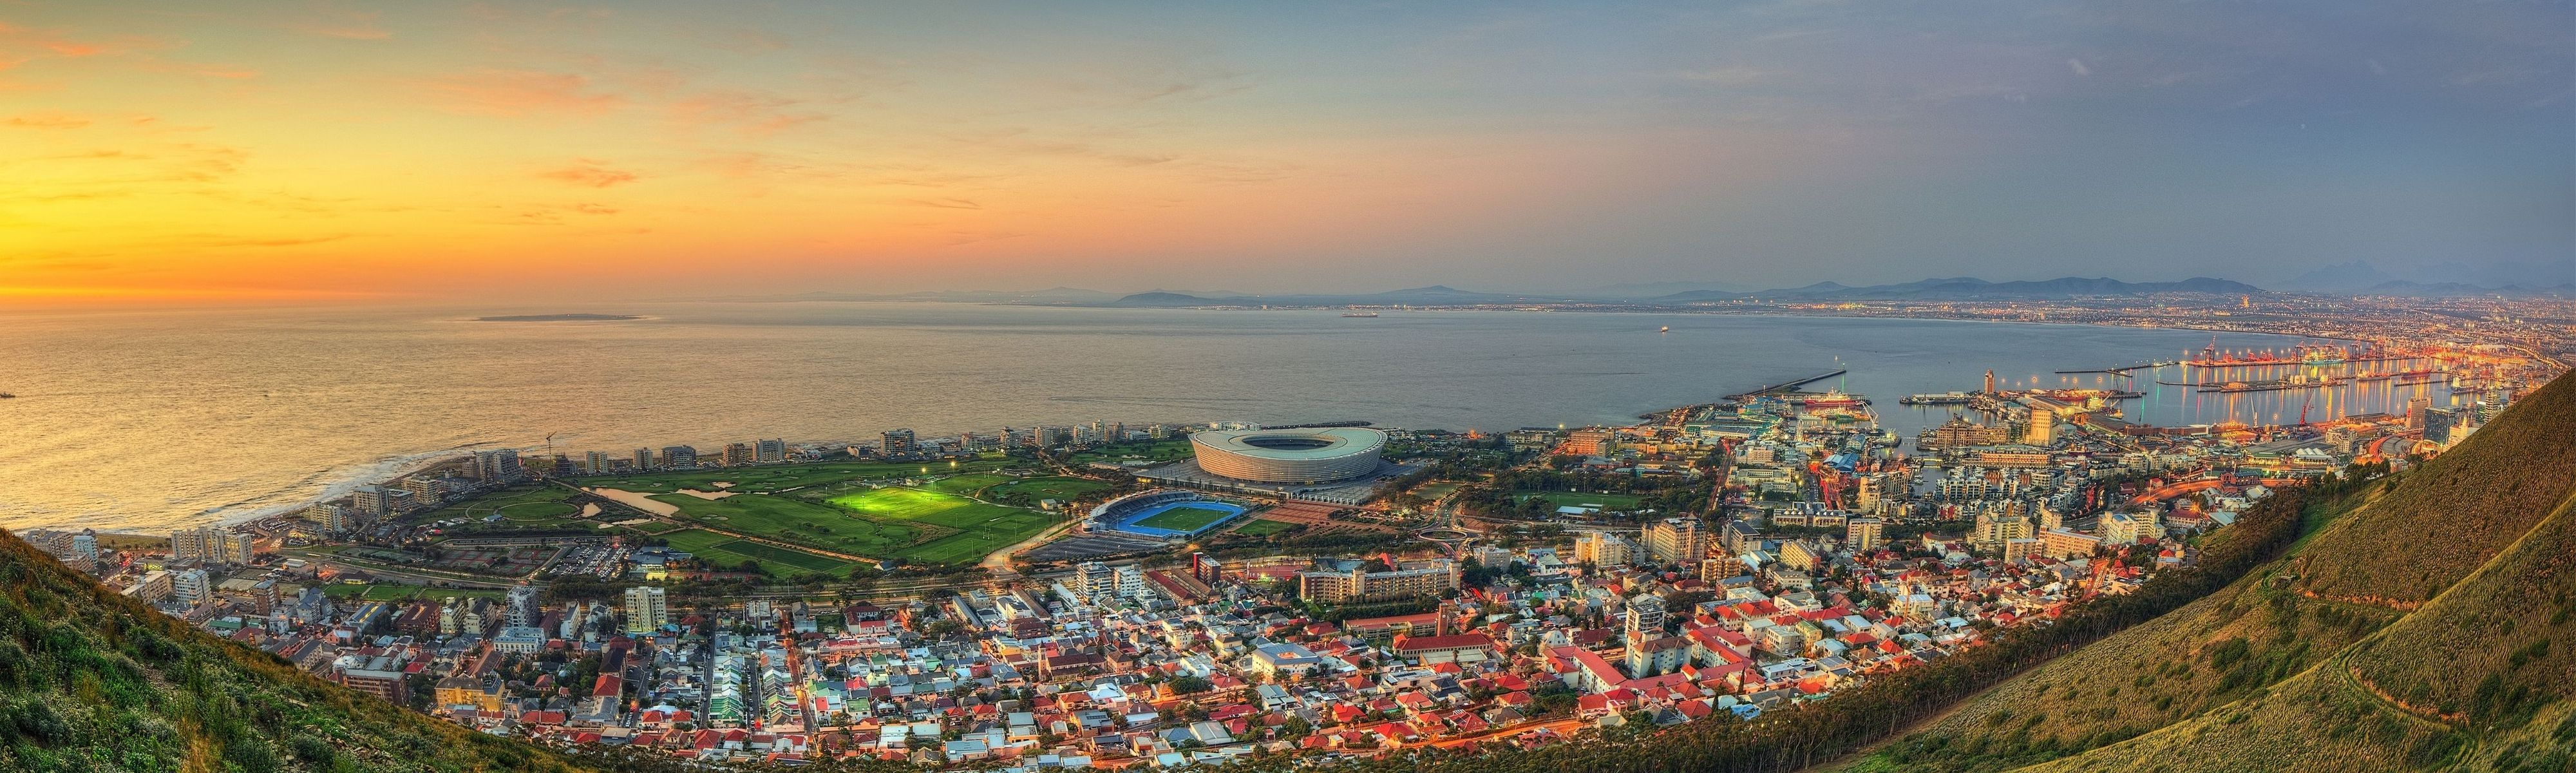 aerial view of cape town in south africa at sunset